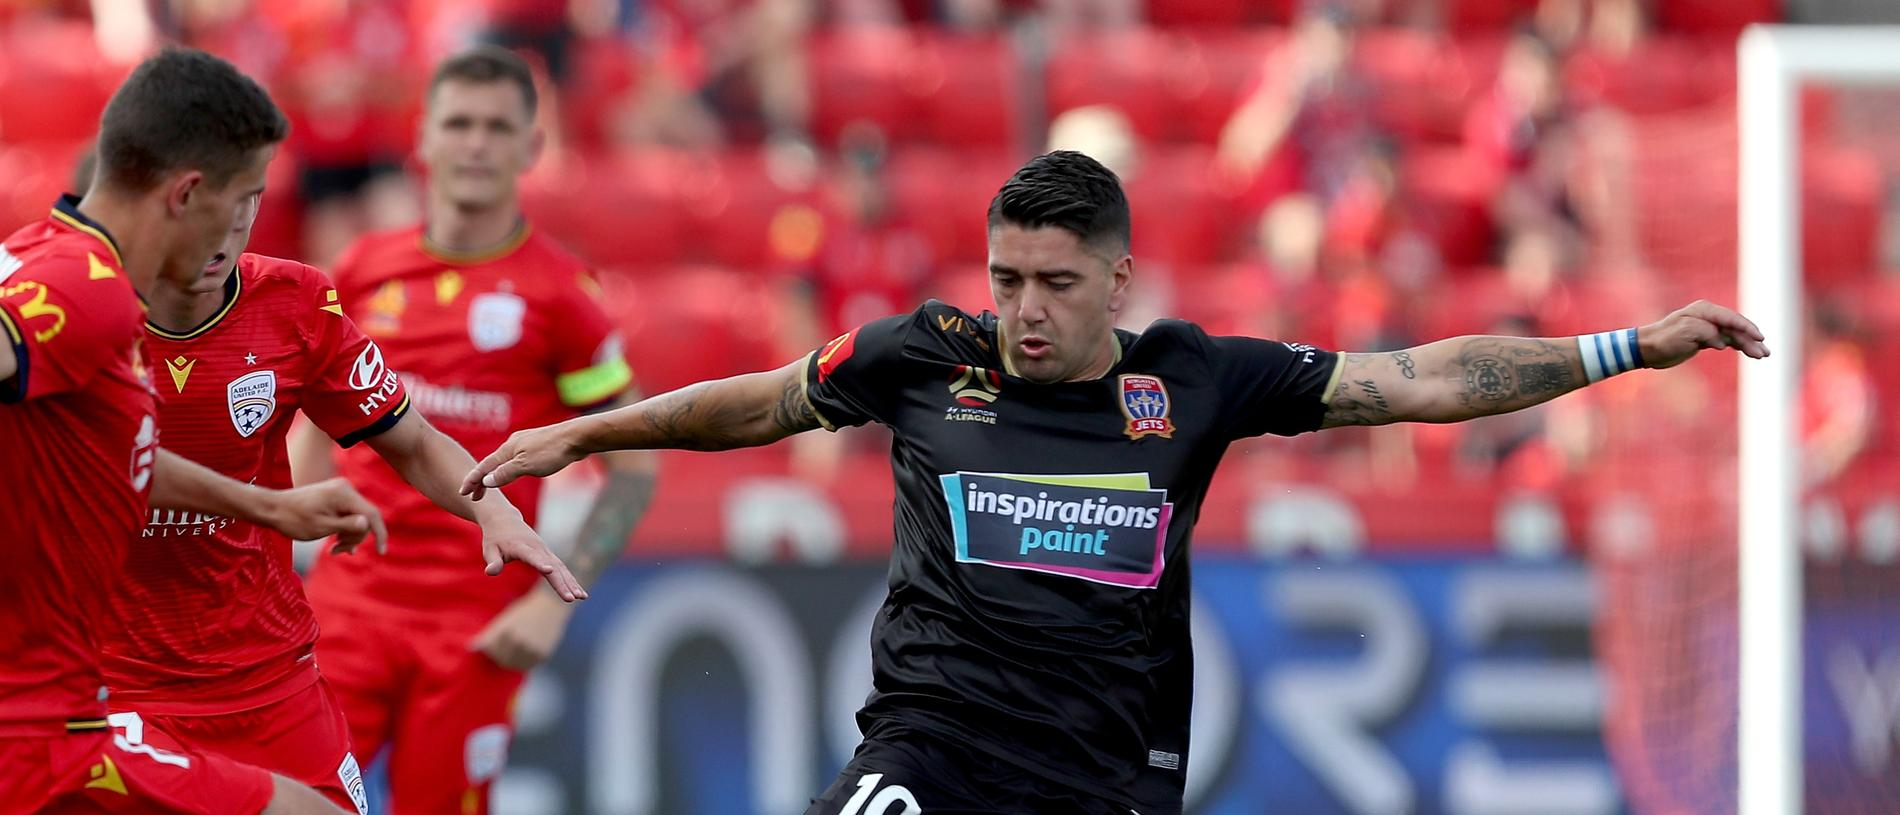 George Blackwood of Adelaide United tackles Dimitri Petratos of the Newcastle Jets during the Round 9 A-League match between Adelaide United and Newcastle Jets at Coopers Stadium in Adelaide, Sunday, December 8, 2019. (AAP Image/James Elsby) NO ARCHIVING, EDITORIAL USE ONLY